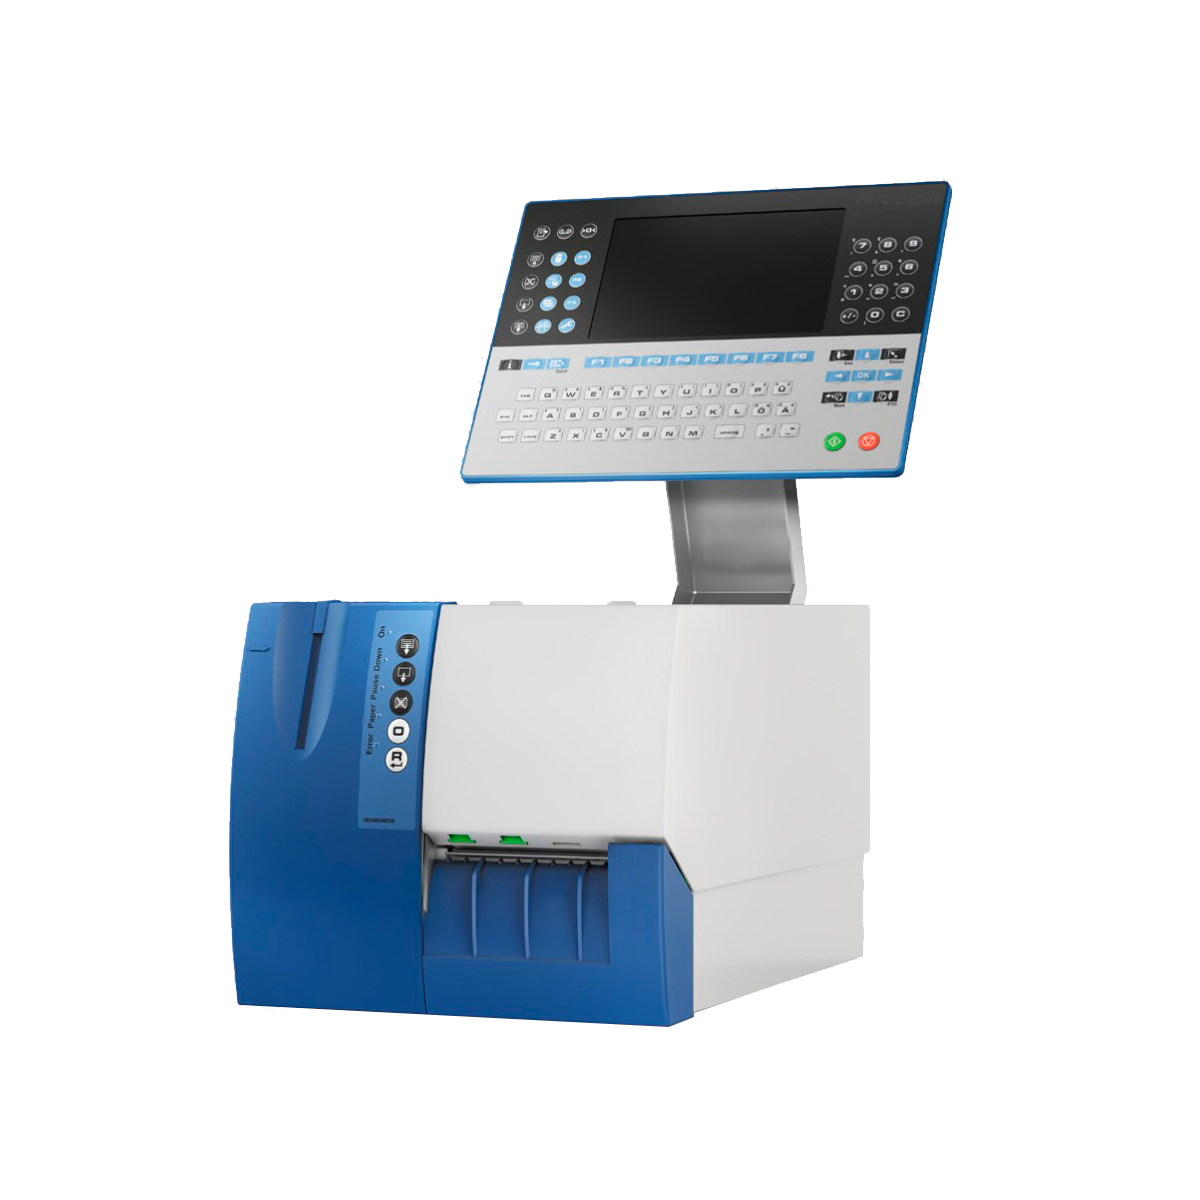 Laboratory printers and labelers